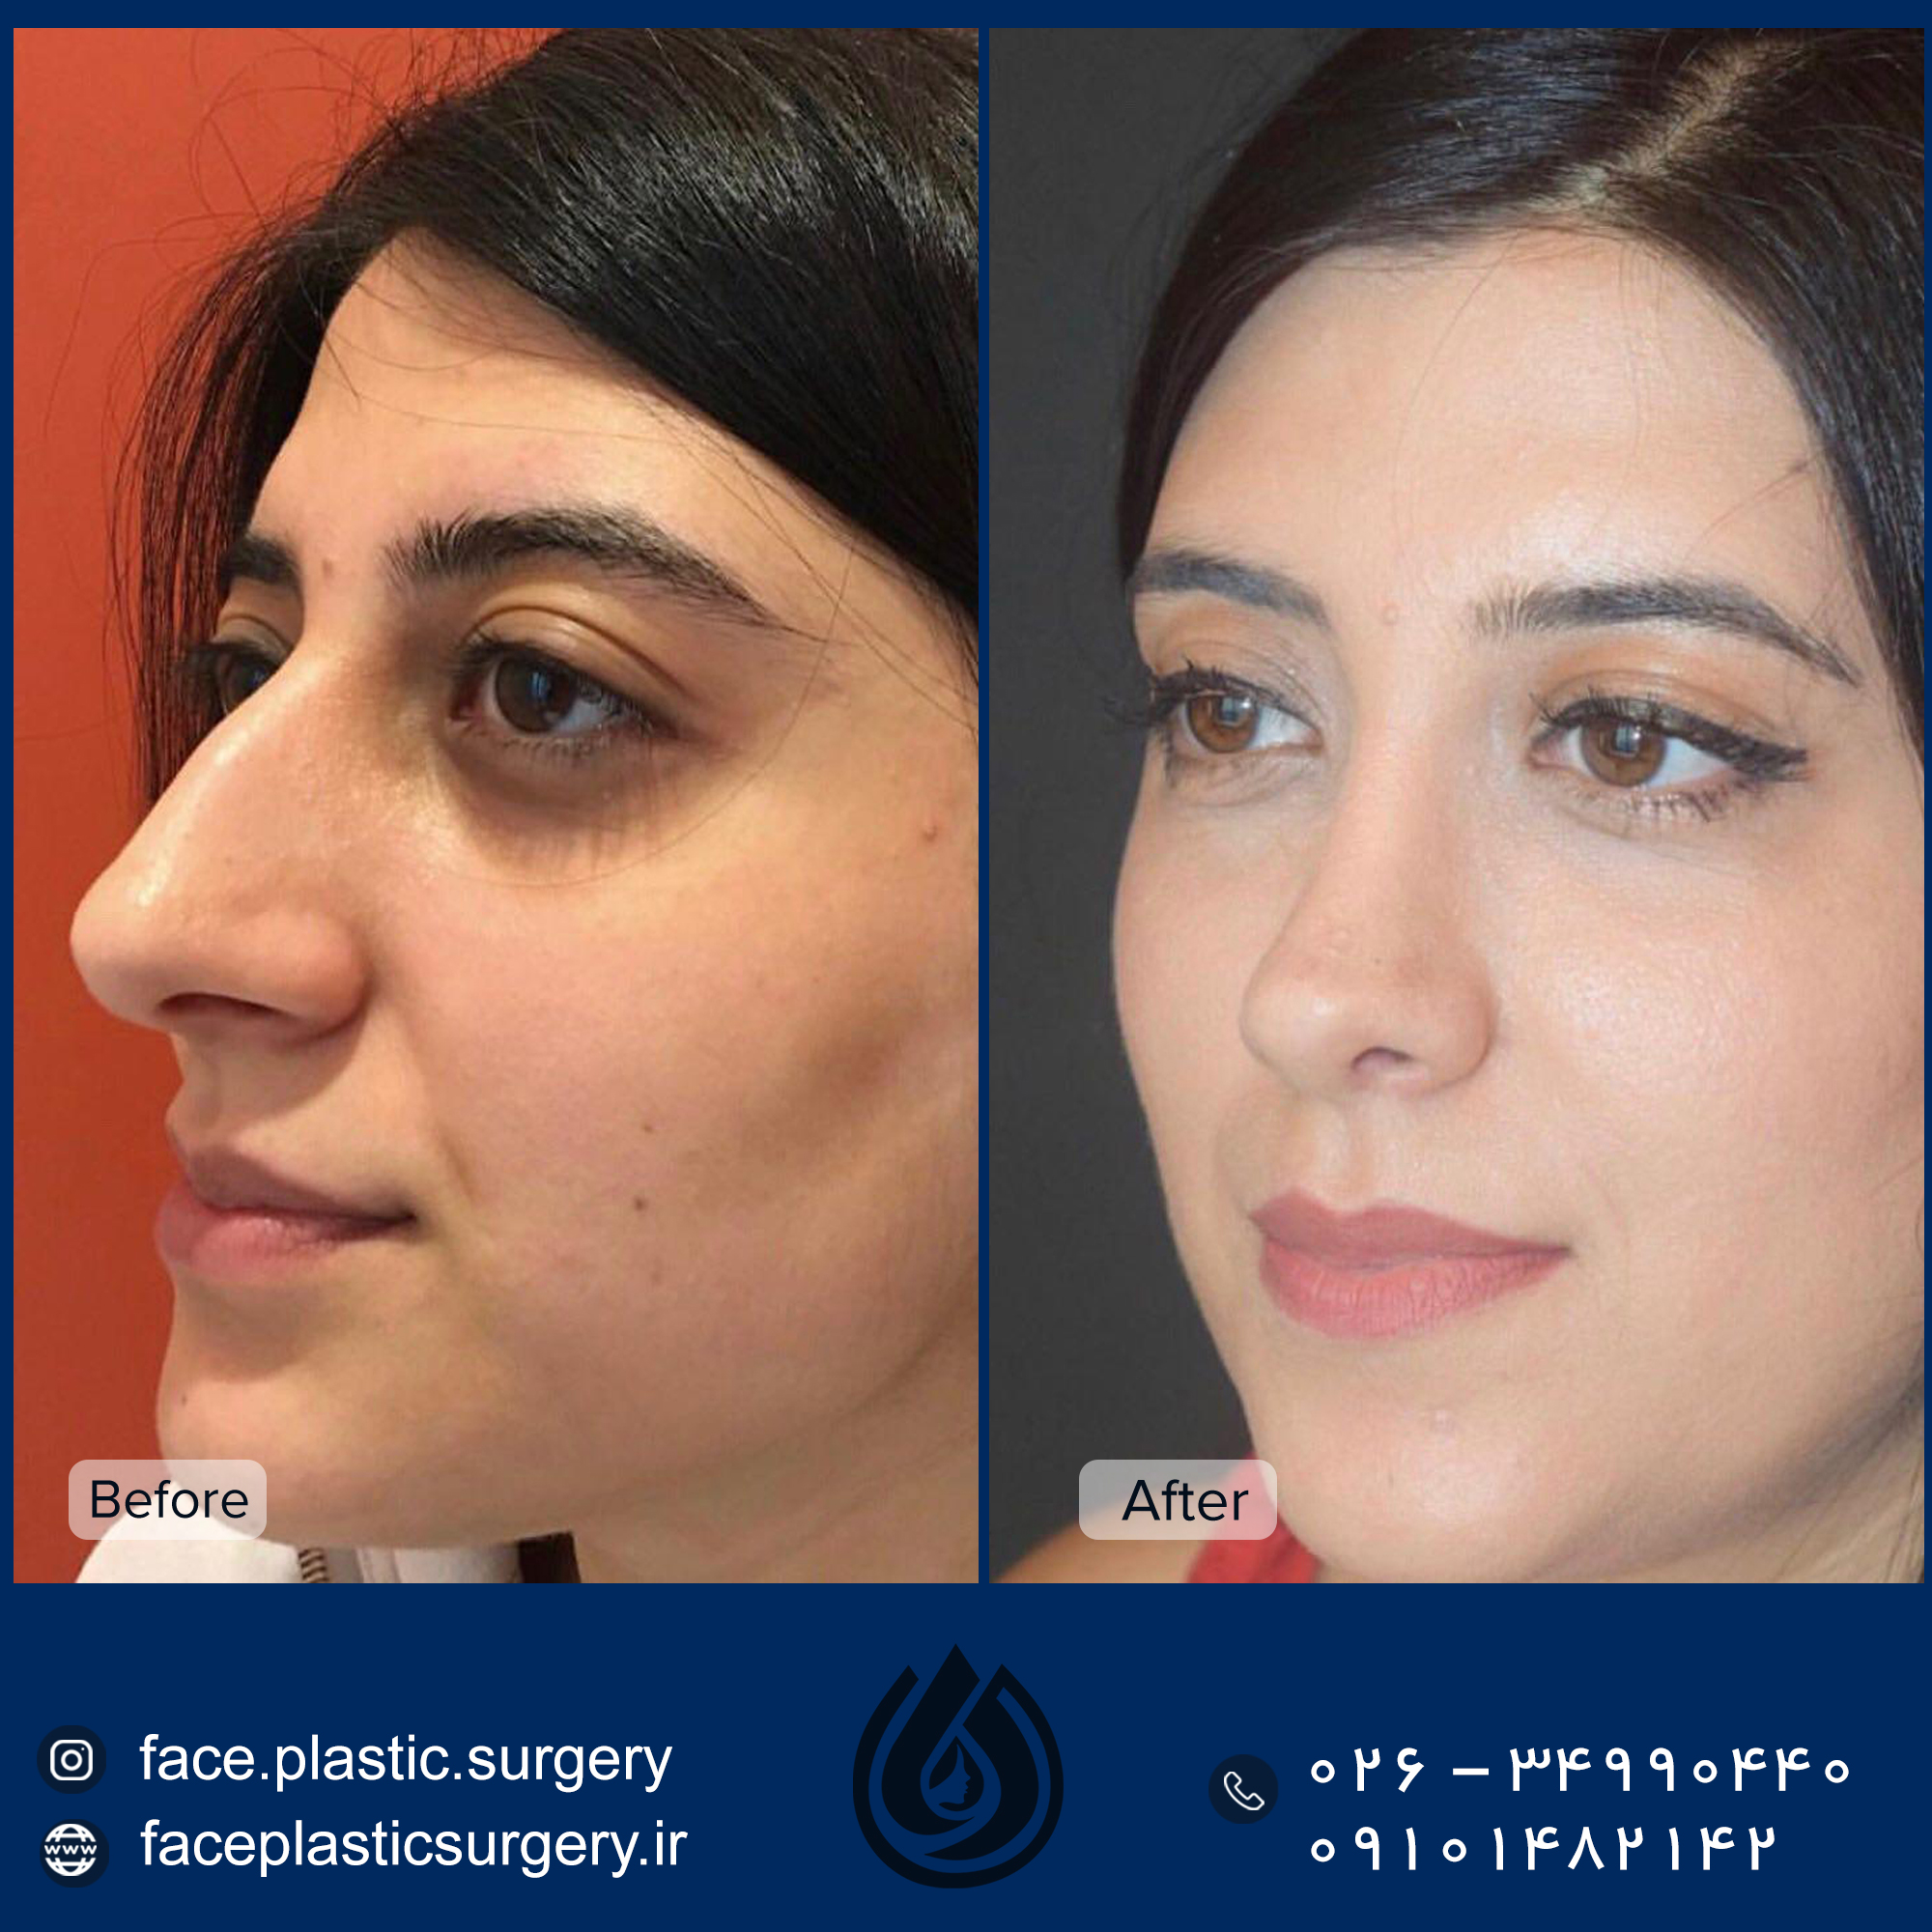 dr-norozi-before-after.jpg6